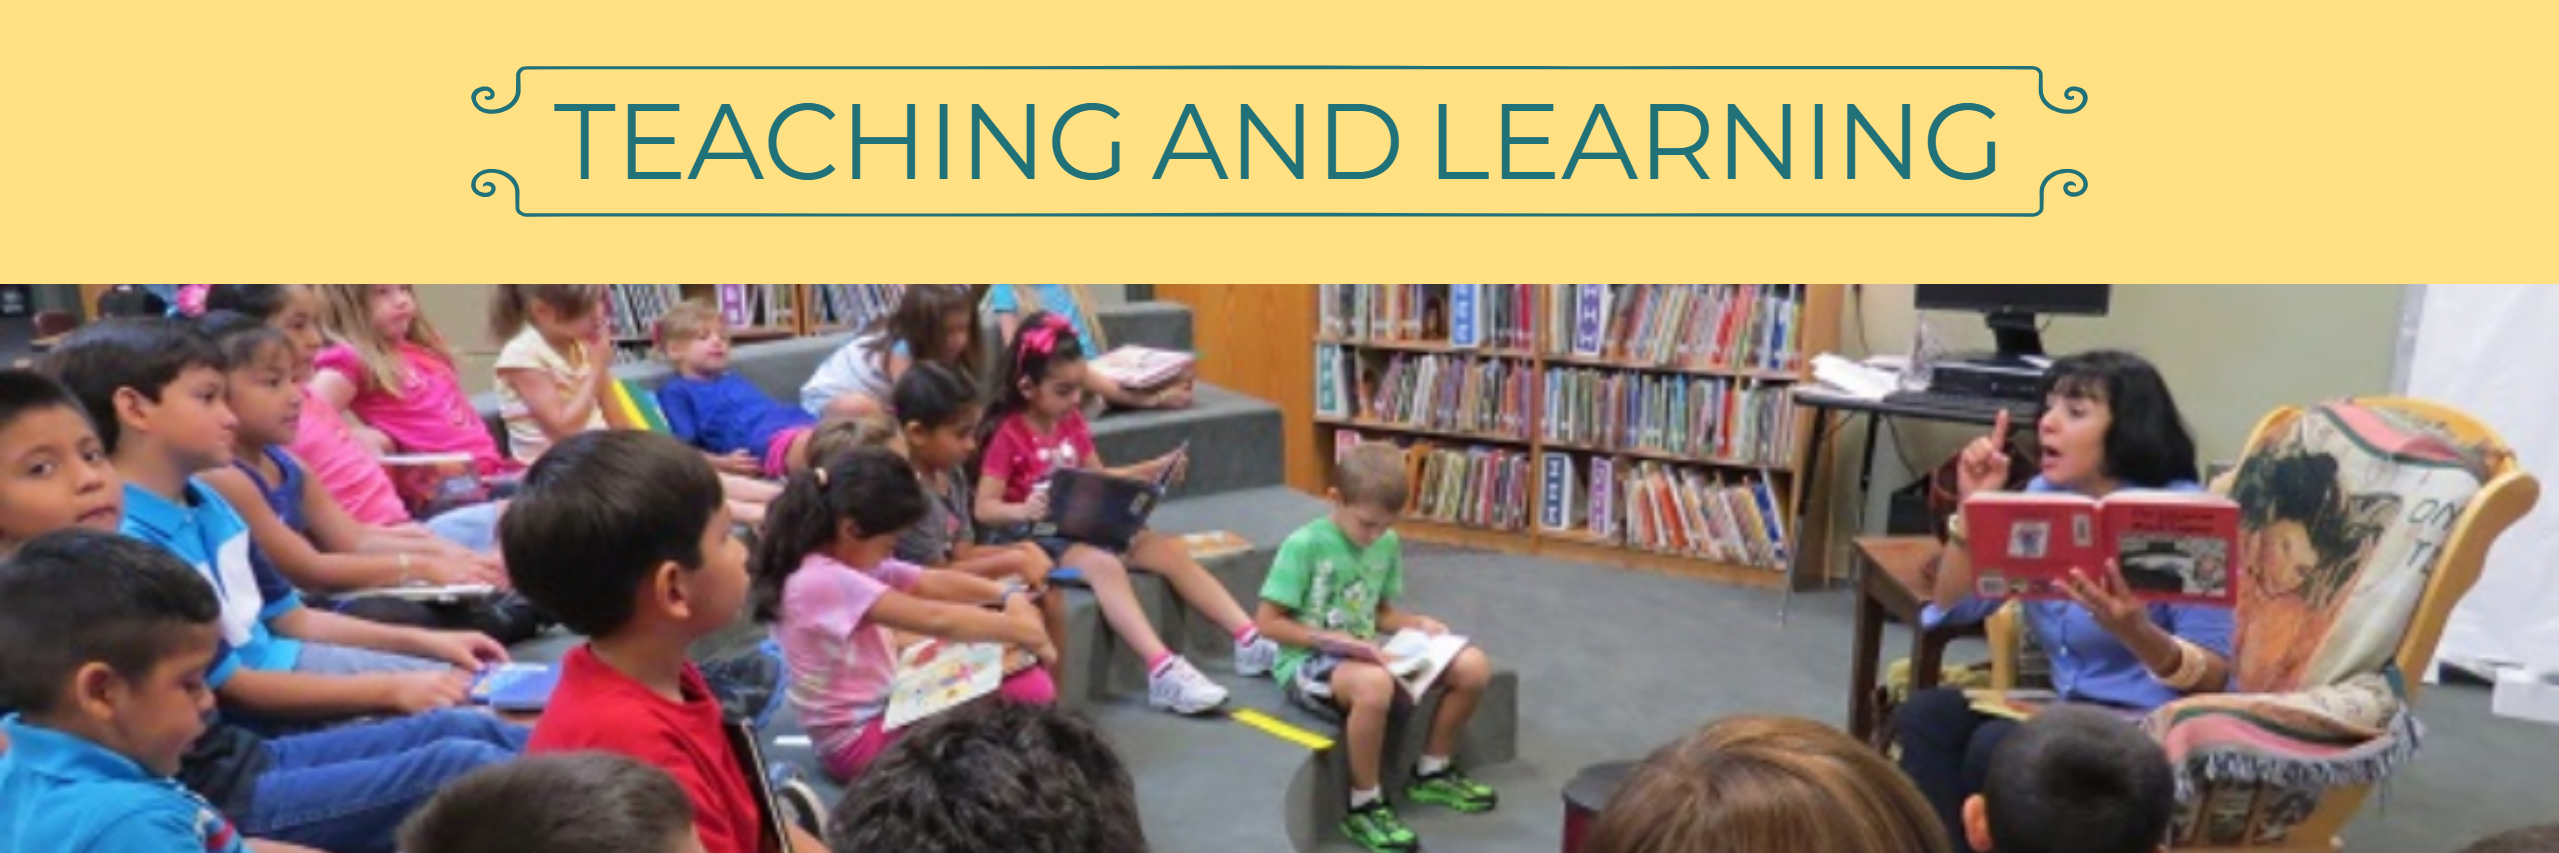 Teaching and Learning, banner image